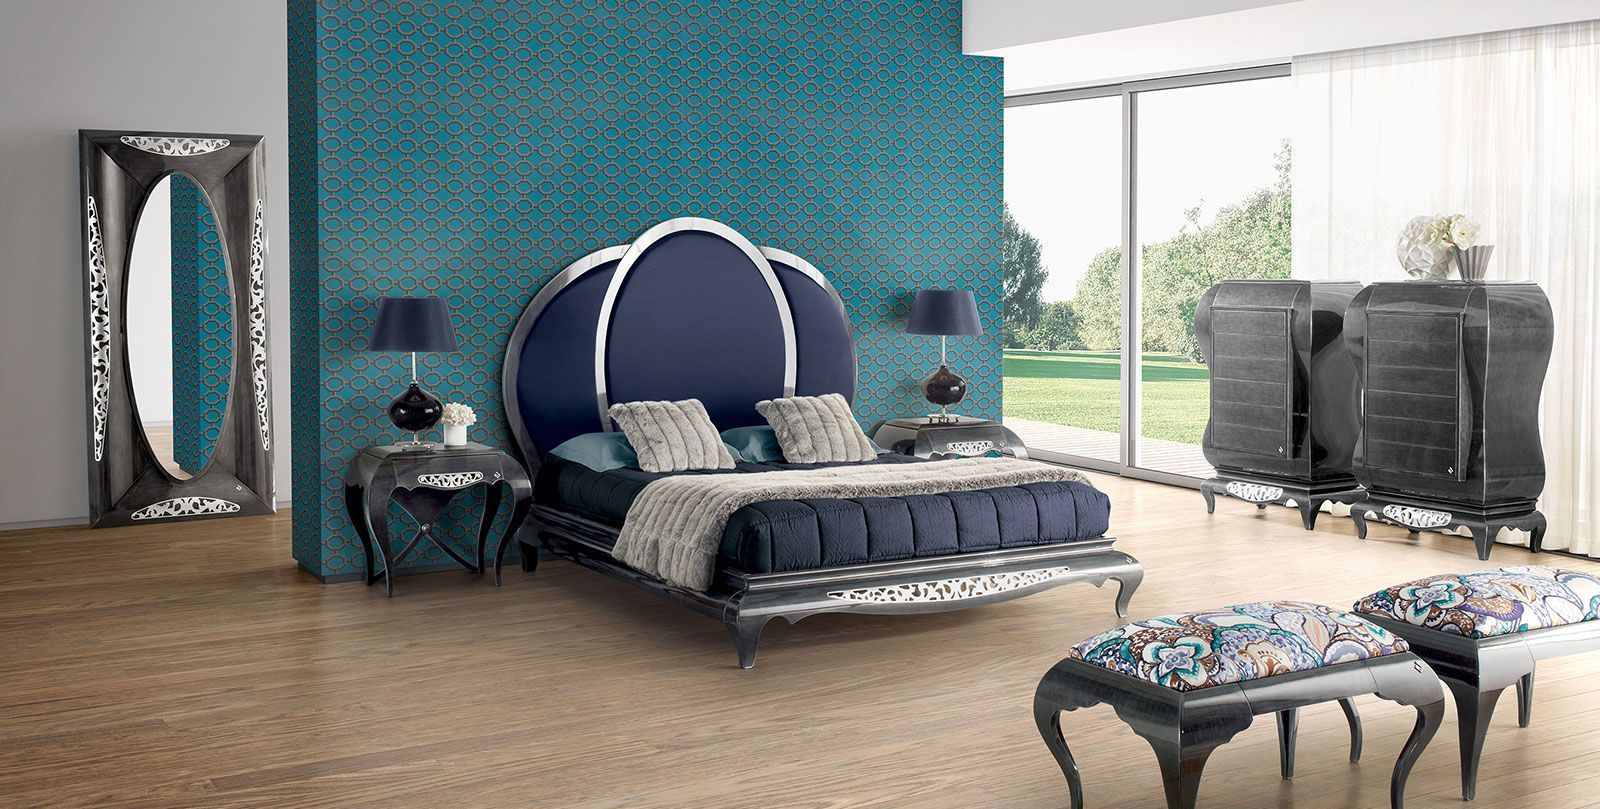 New Style Bed Design Part - 29: Double Bed / New Baroque Design / With Upholstered Headboard NEW YORK  JETCLASS - REAL FURNITURE